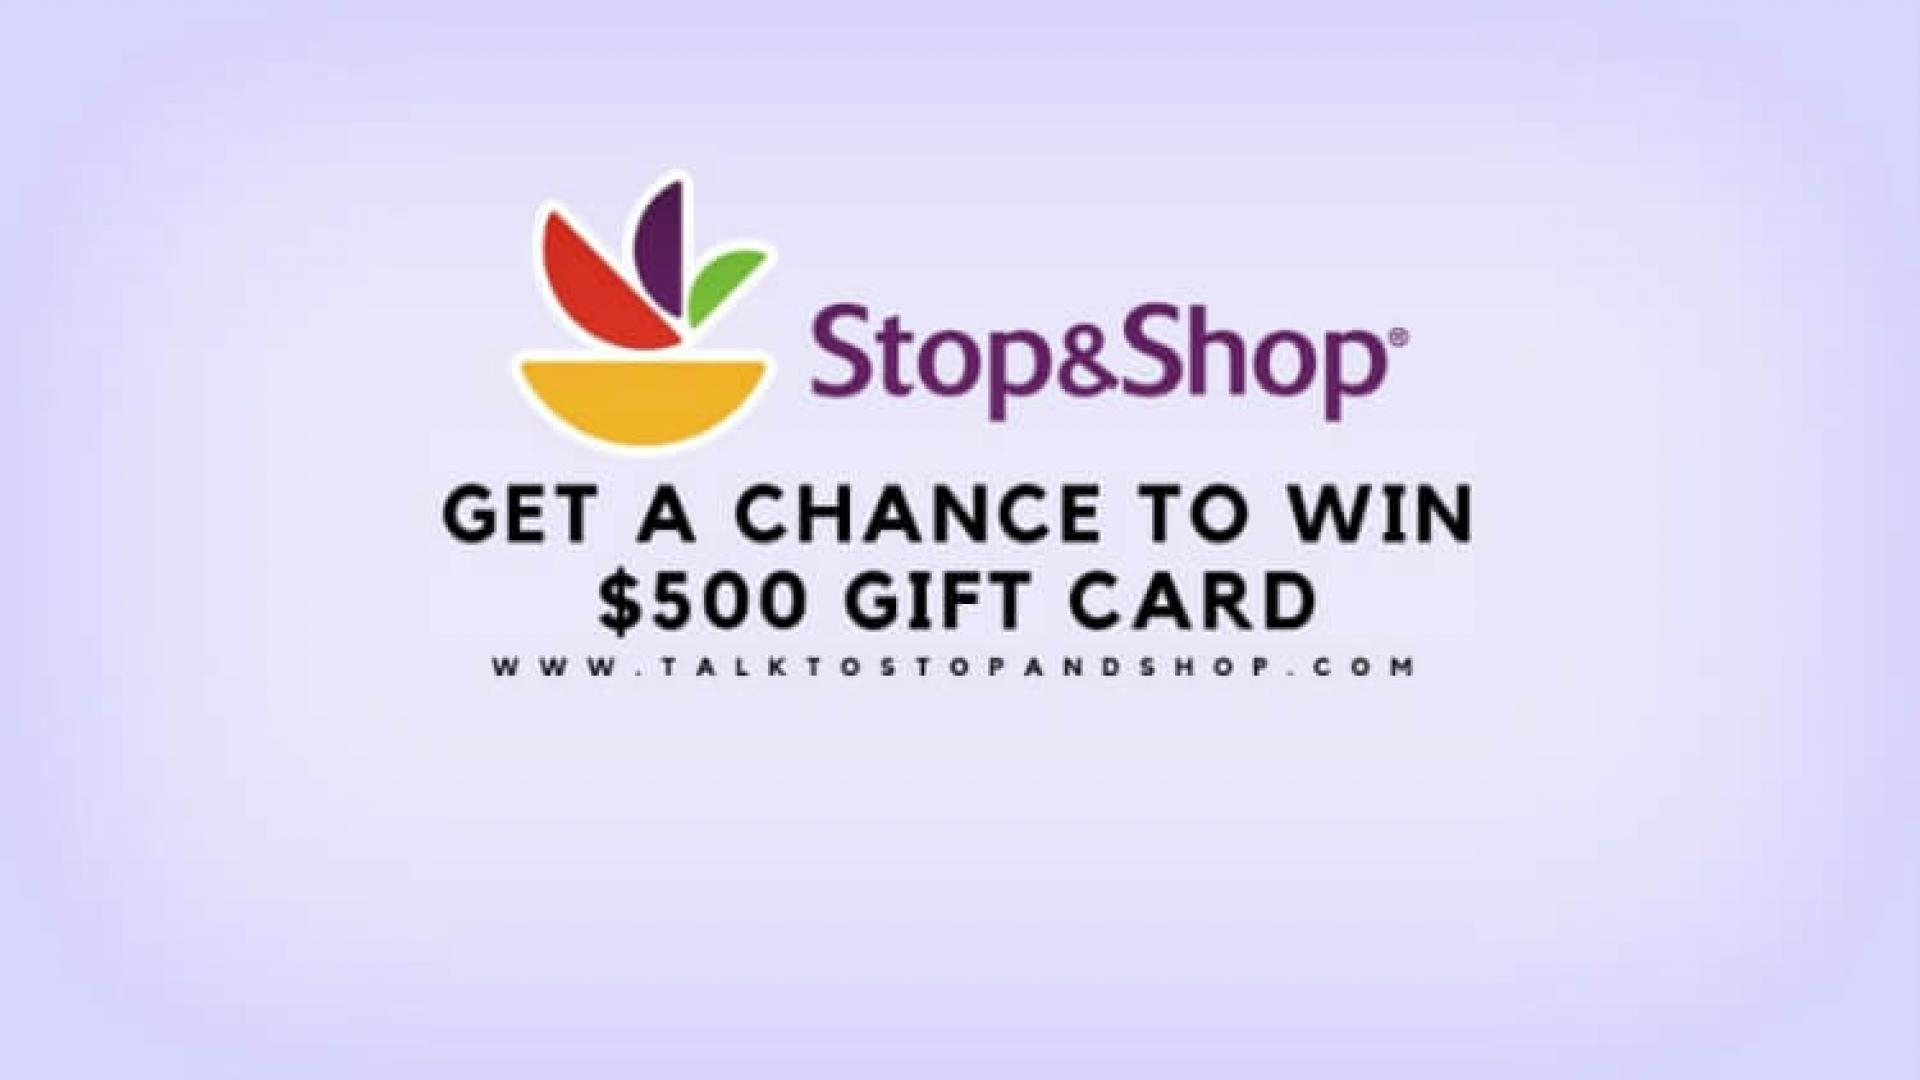 Complete Talktostopandshop Survey and Win $500 Gift Card 😎😎